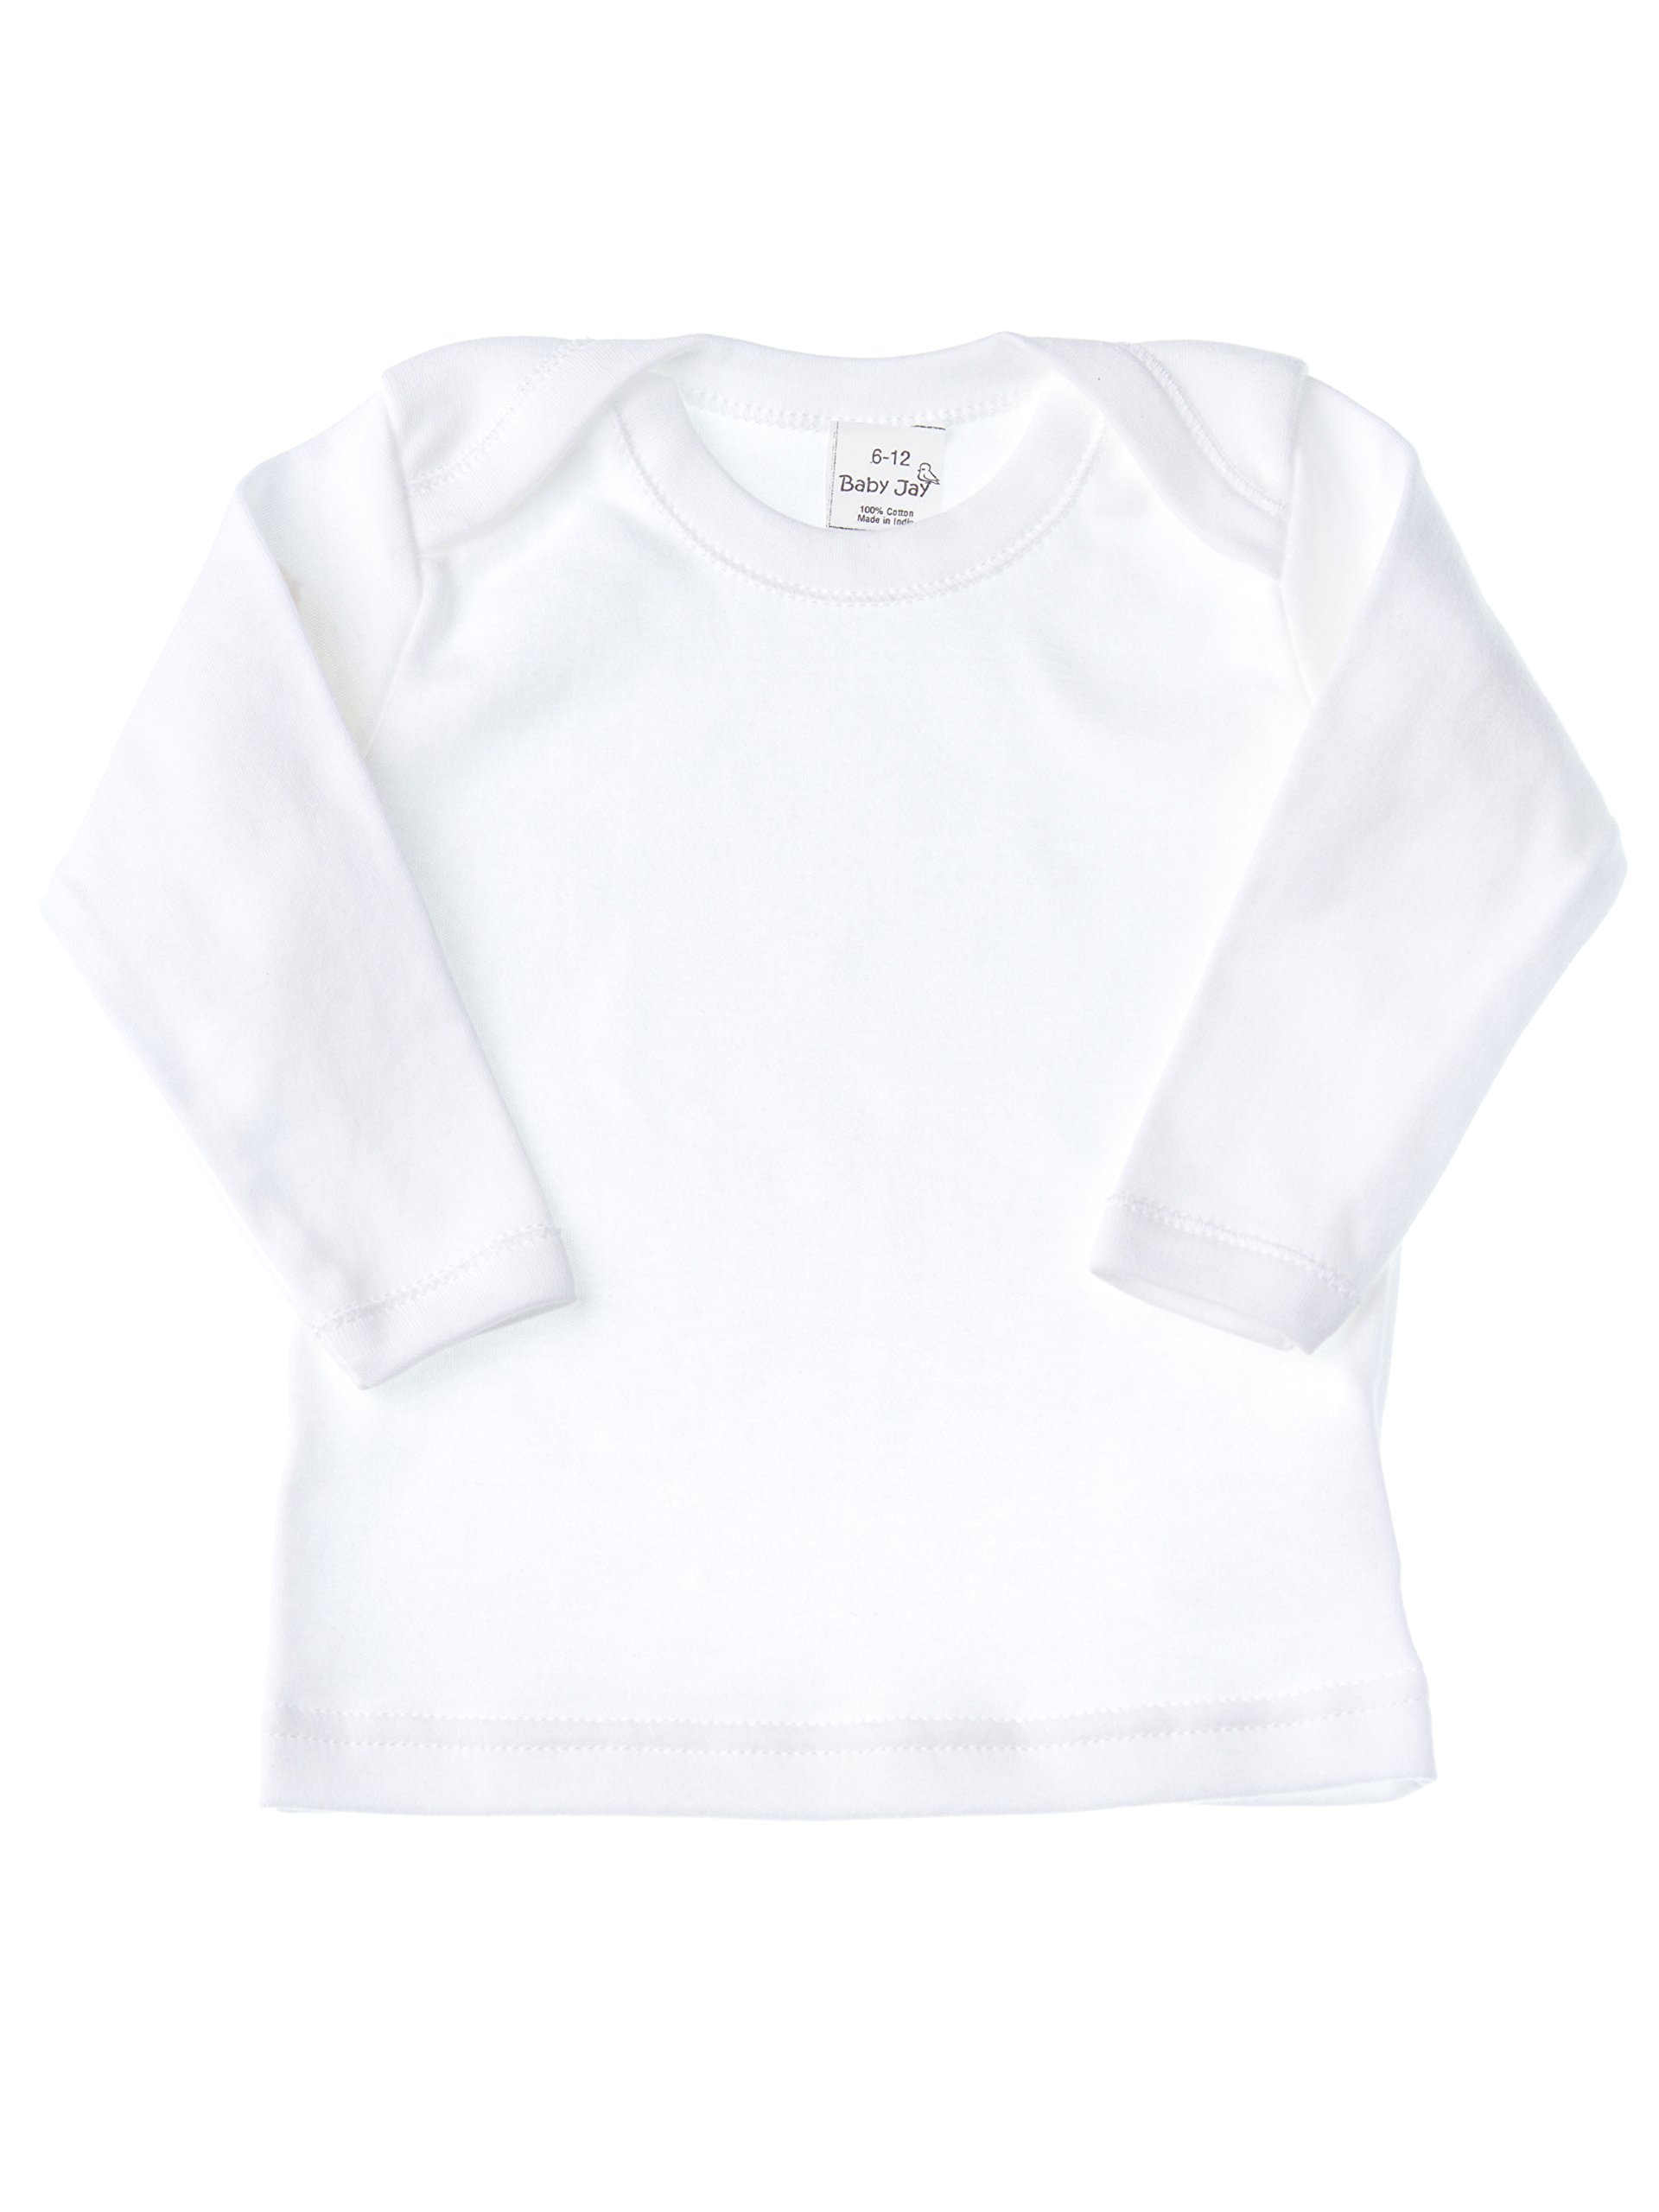 Baby Jay Cotton Undershirt T-Shirt, Long Sleeve Lap Shoulder - WTLE 18-24 5-Pack by Baby Jay (Image #2)